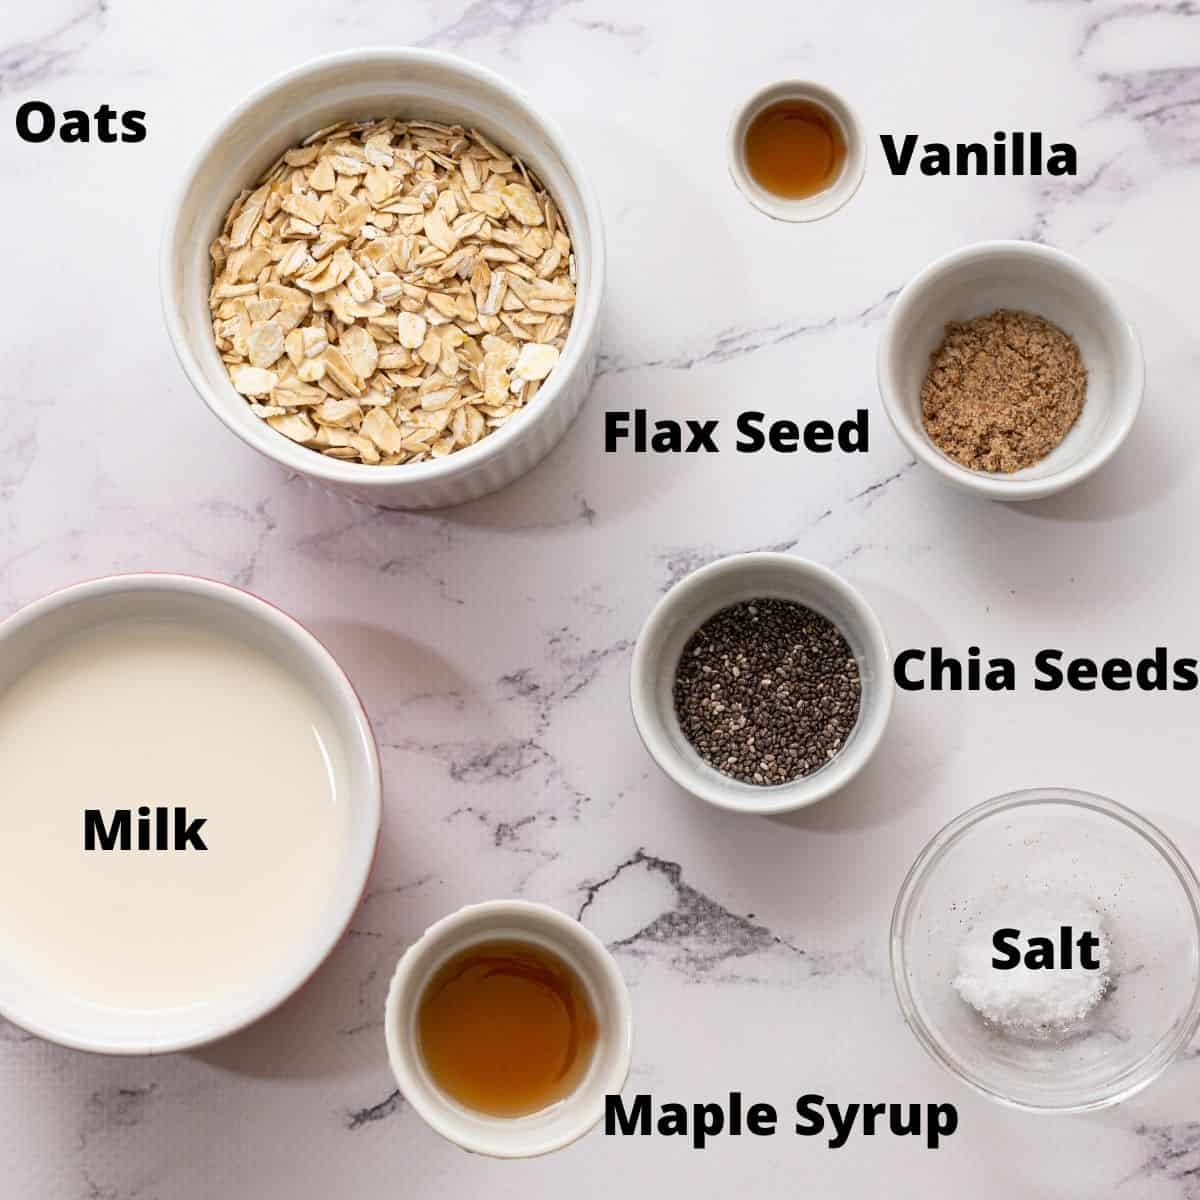 Ingredients for overnight oats labeled on counter